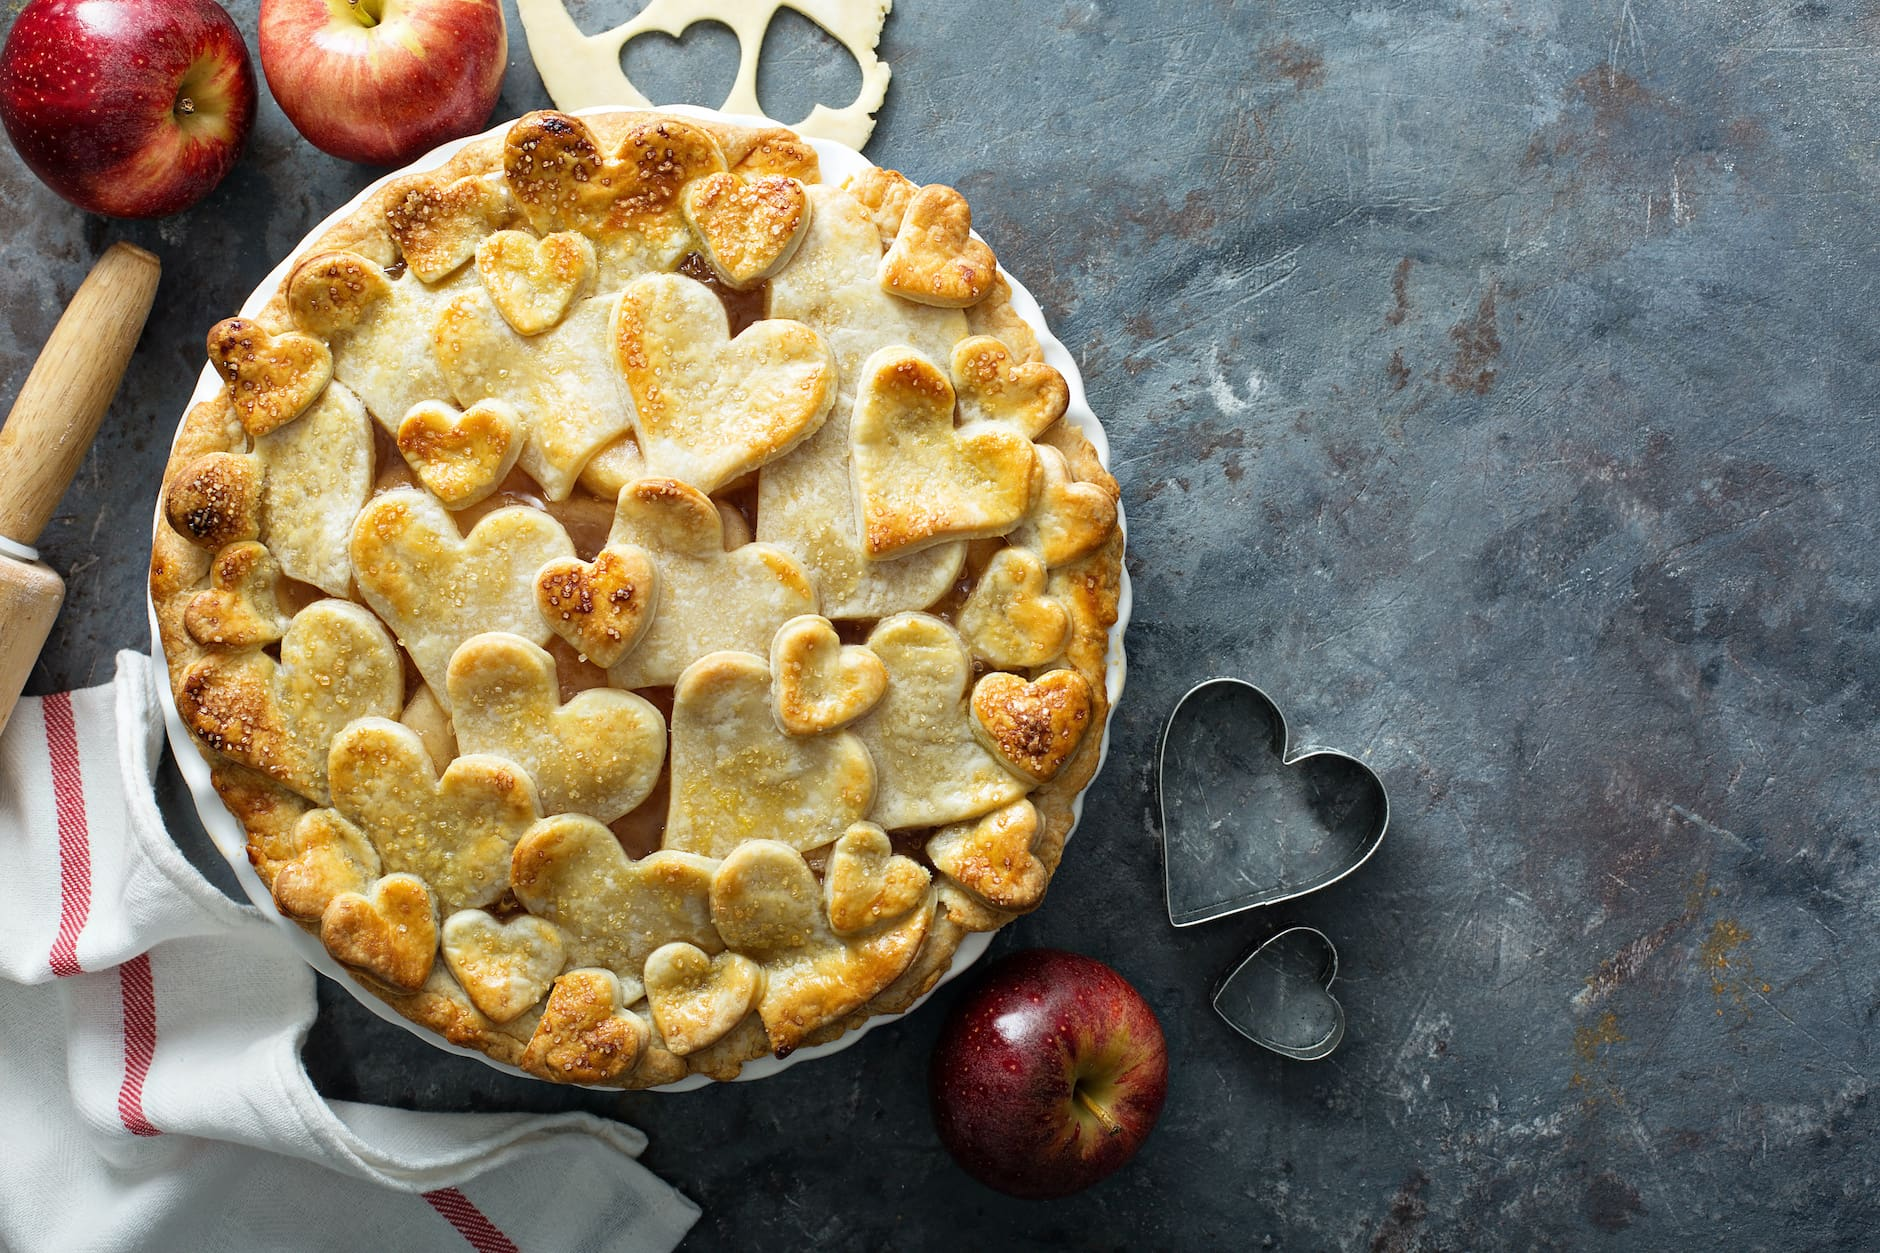 Winning Apple Pie Recipesimage preview